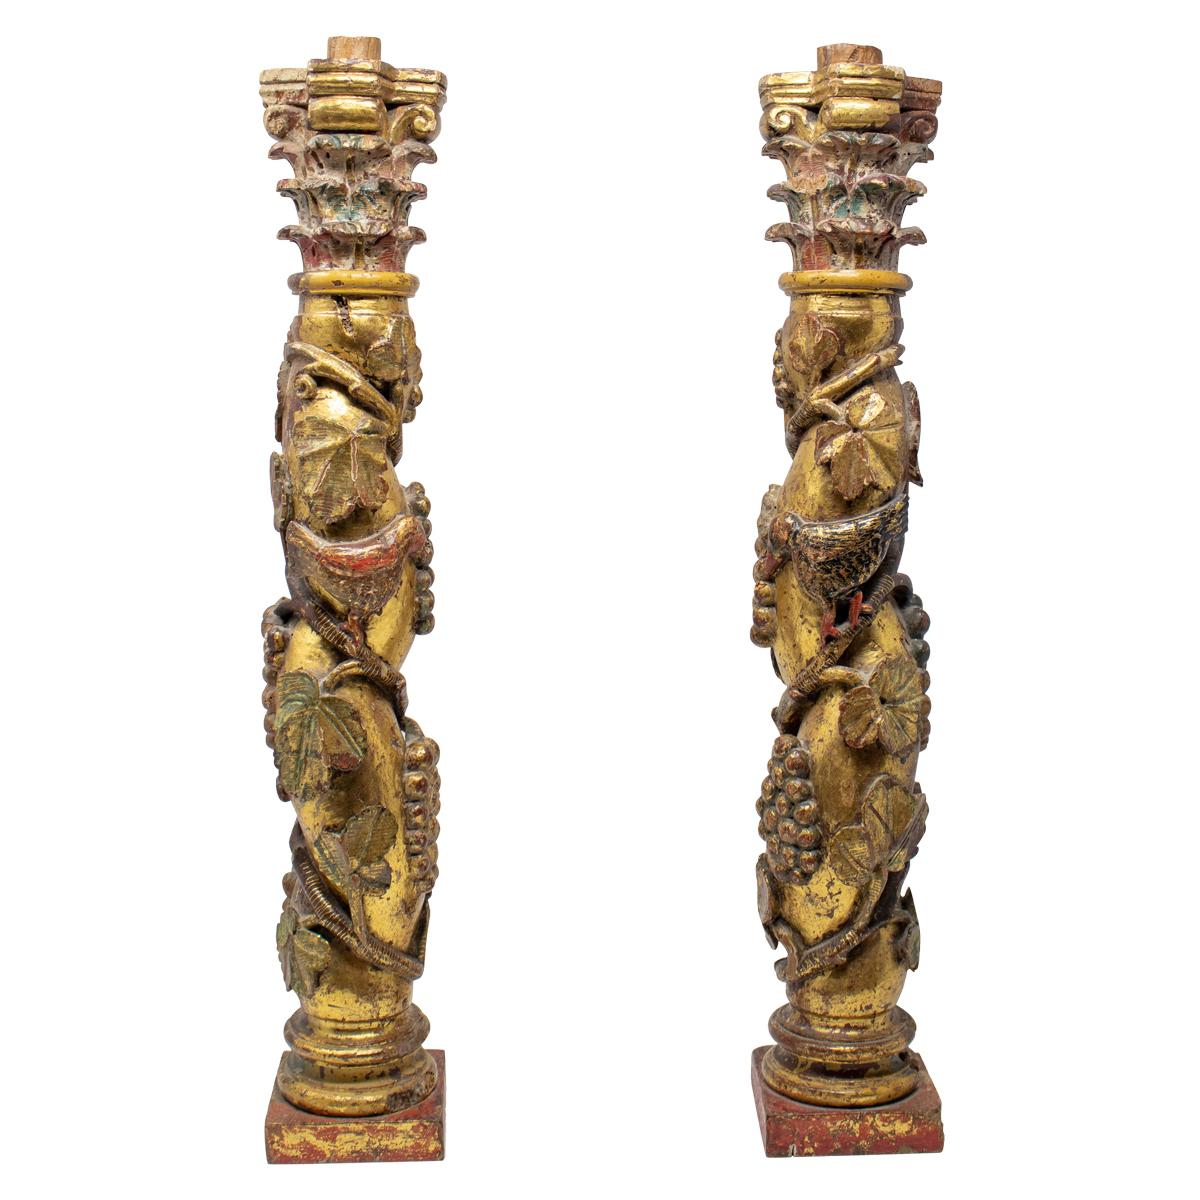 19th Century Pair of Carved Salomonic Gild Wood Spanish Castilian School Columns